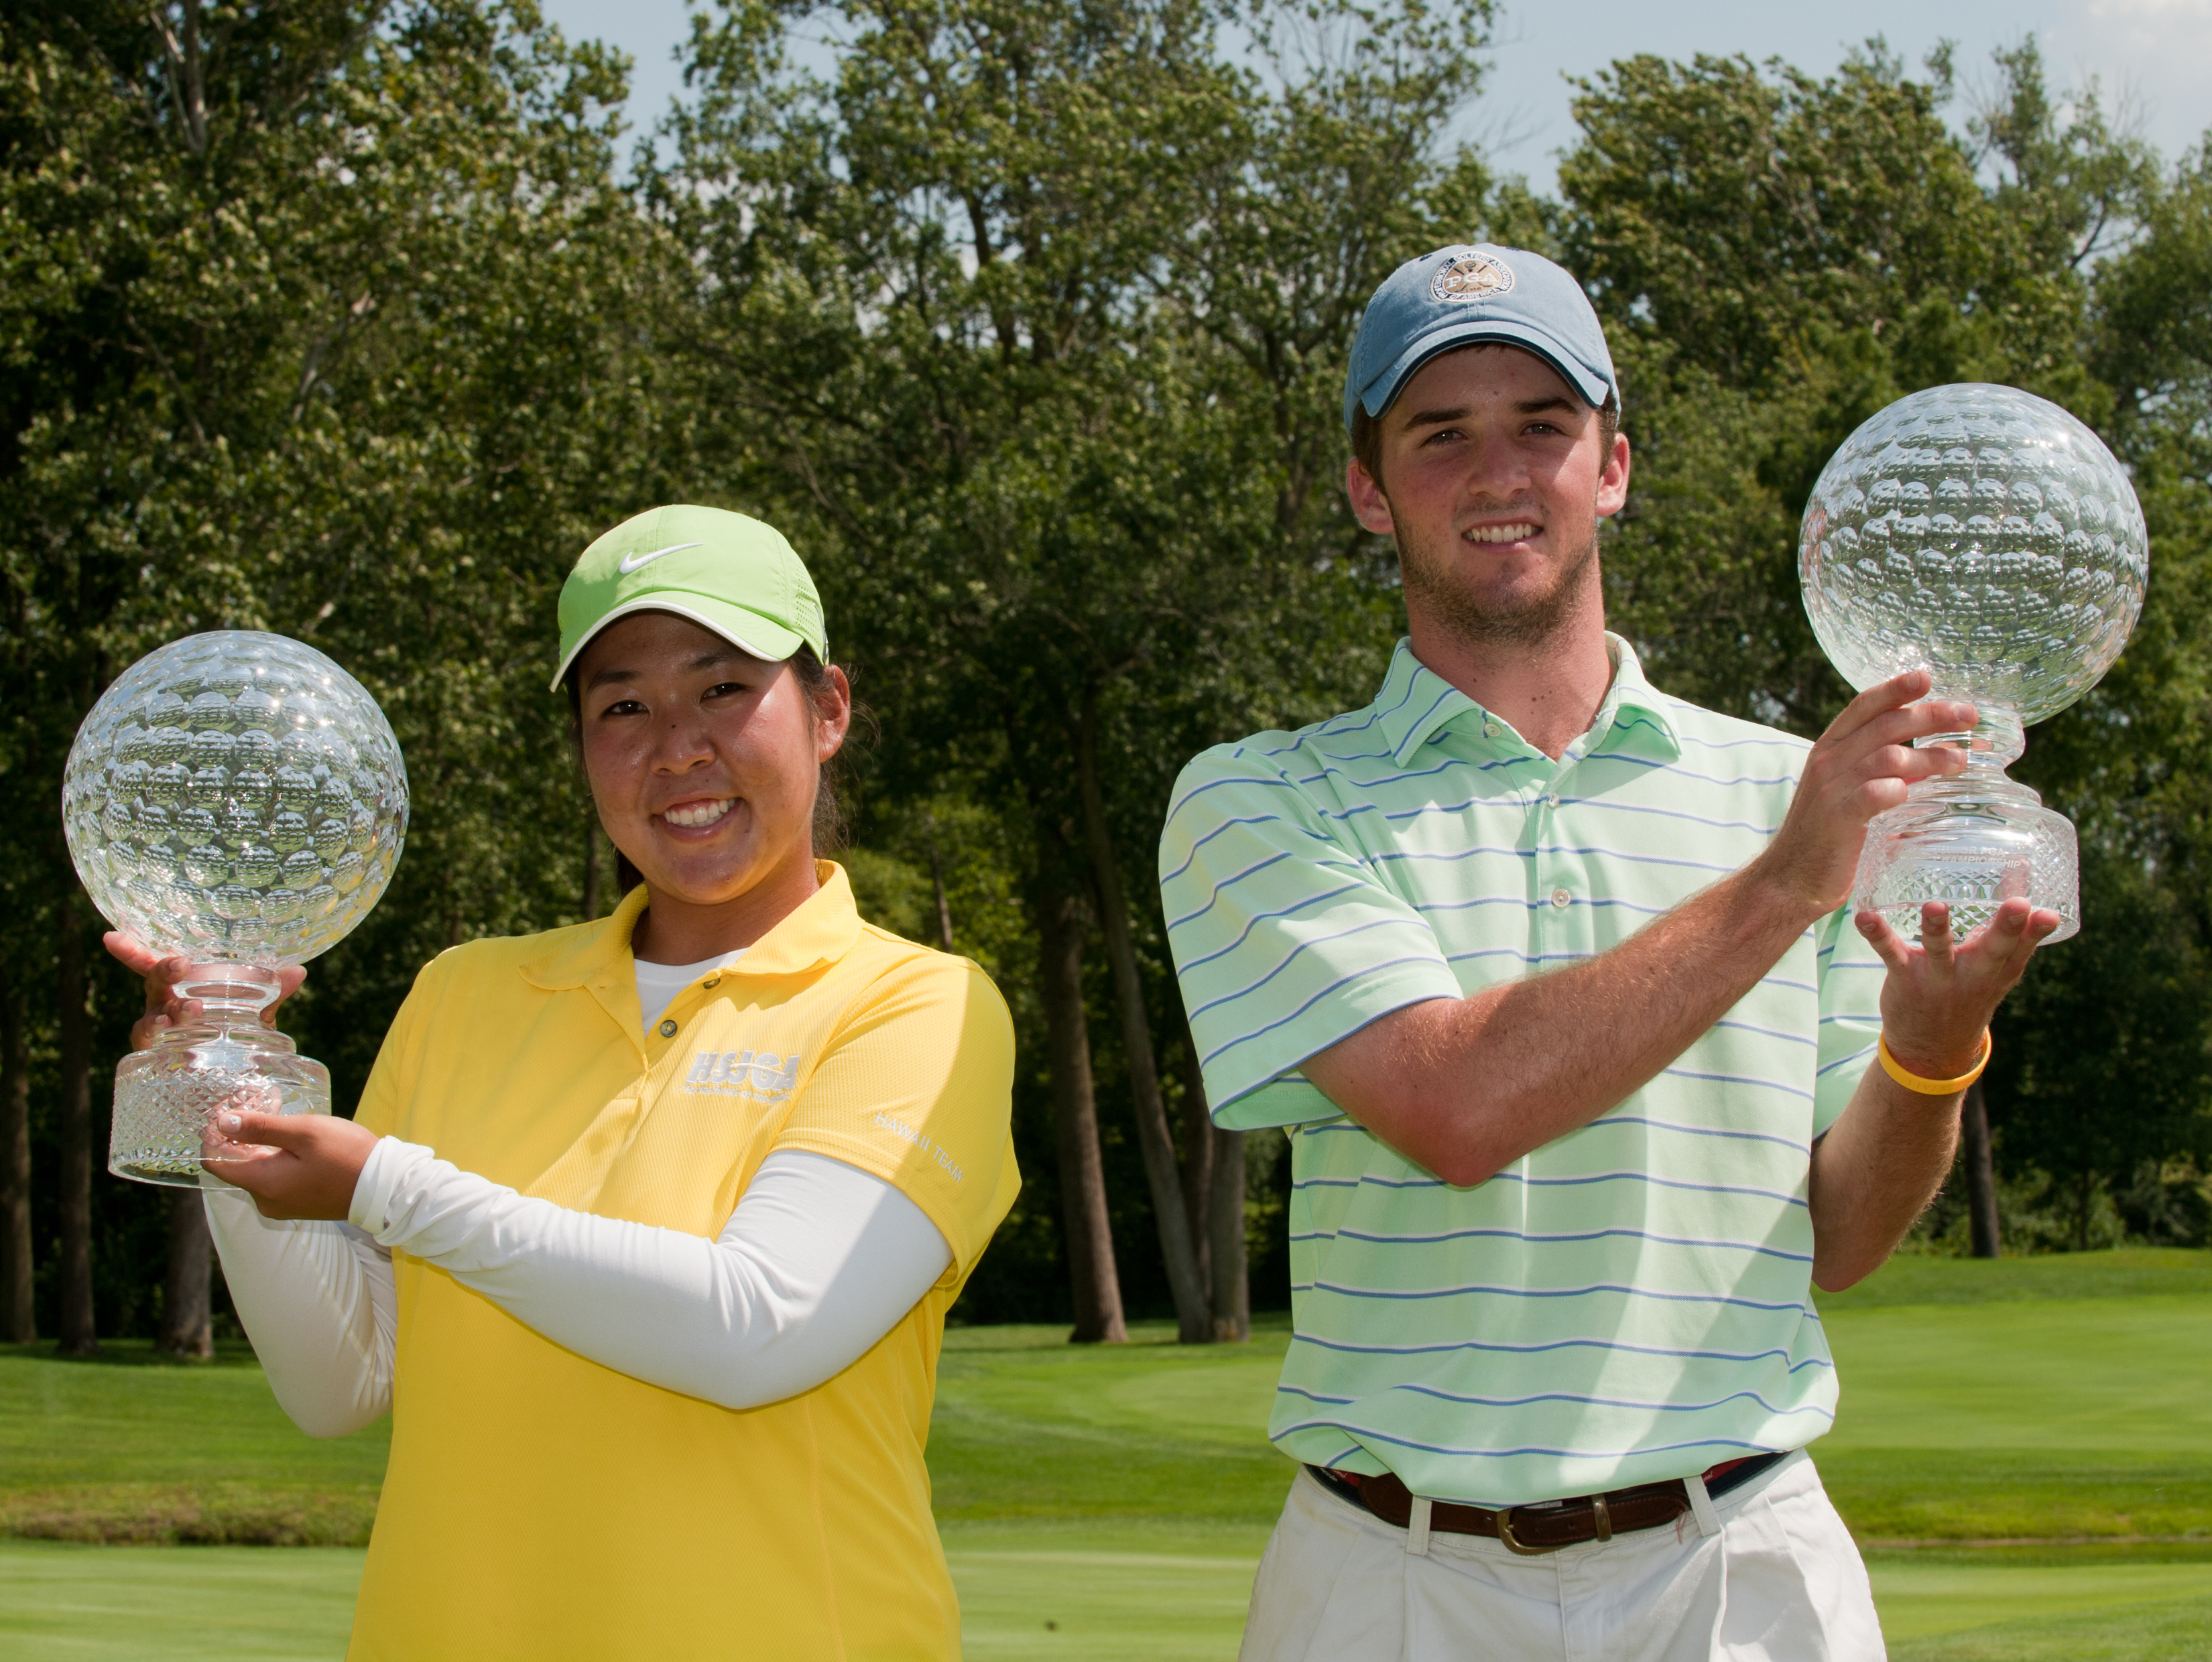 Cassy Isagawa and Denny McCarthy won the Junior PGA Championship on Aug. 5.